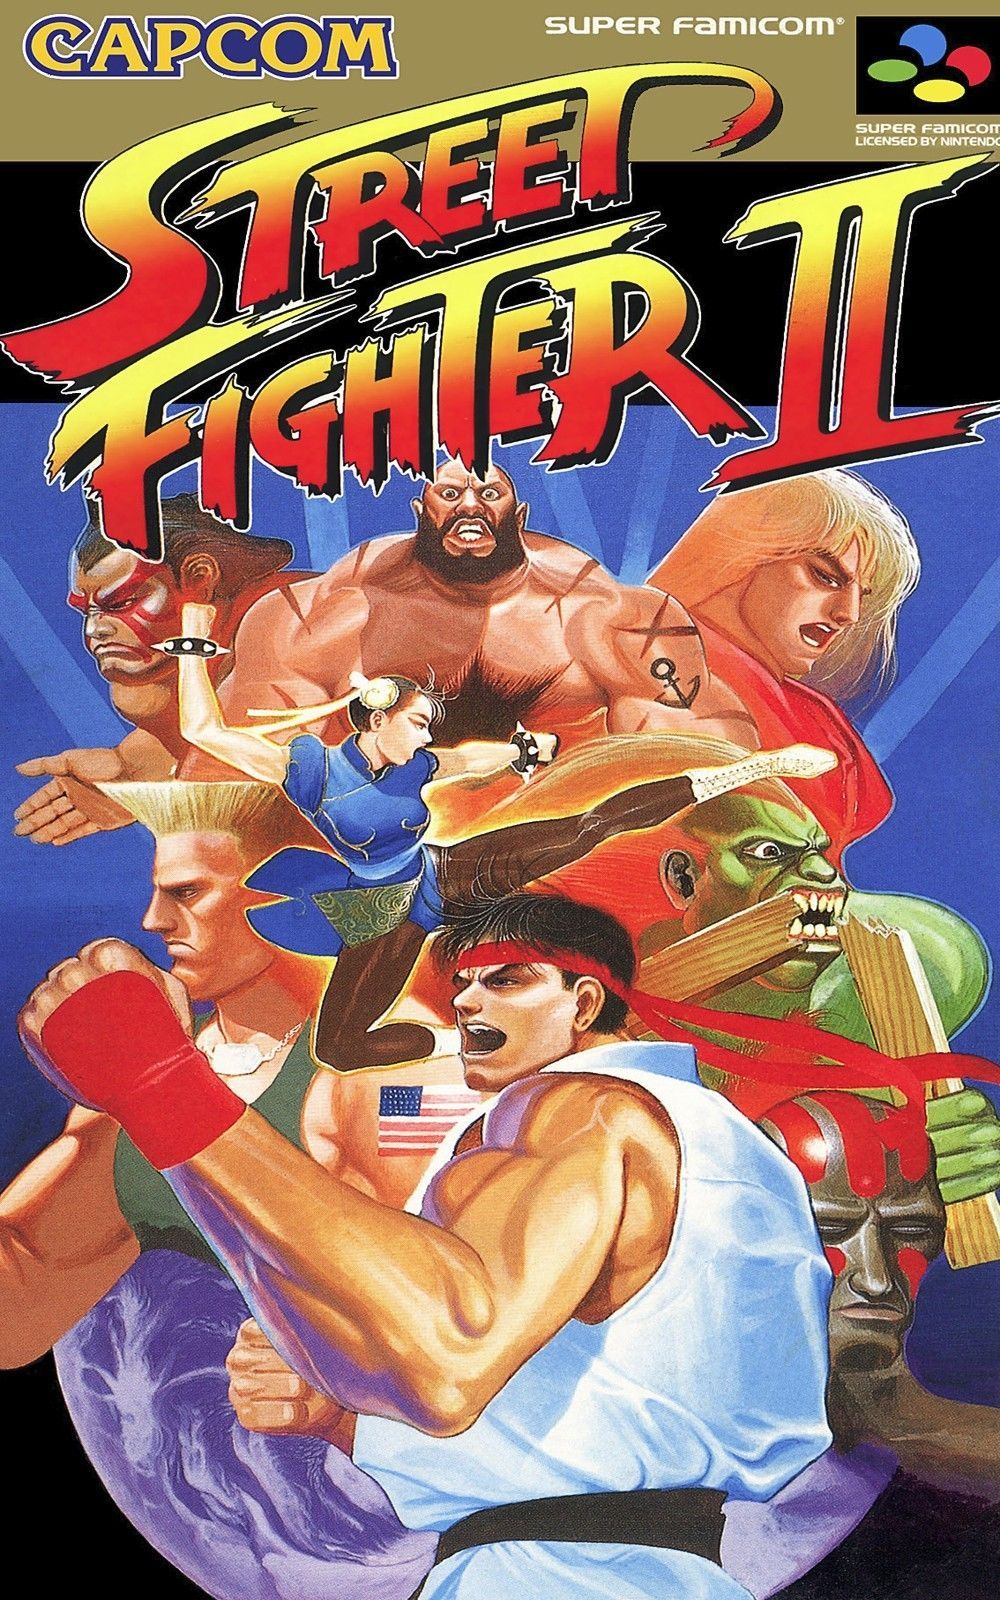 2695c178d4d  13.45 - Street Fighter 2 Classic - Wall Poster 24 In X 15 In - Fast  Shipping  ebay  Collectibles